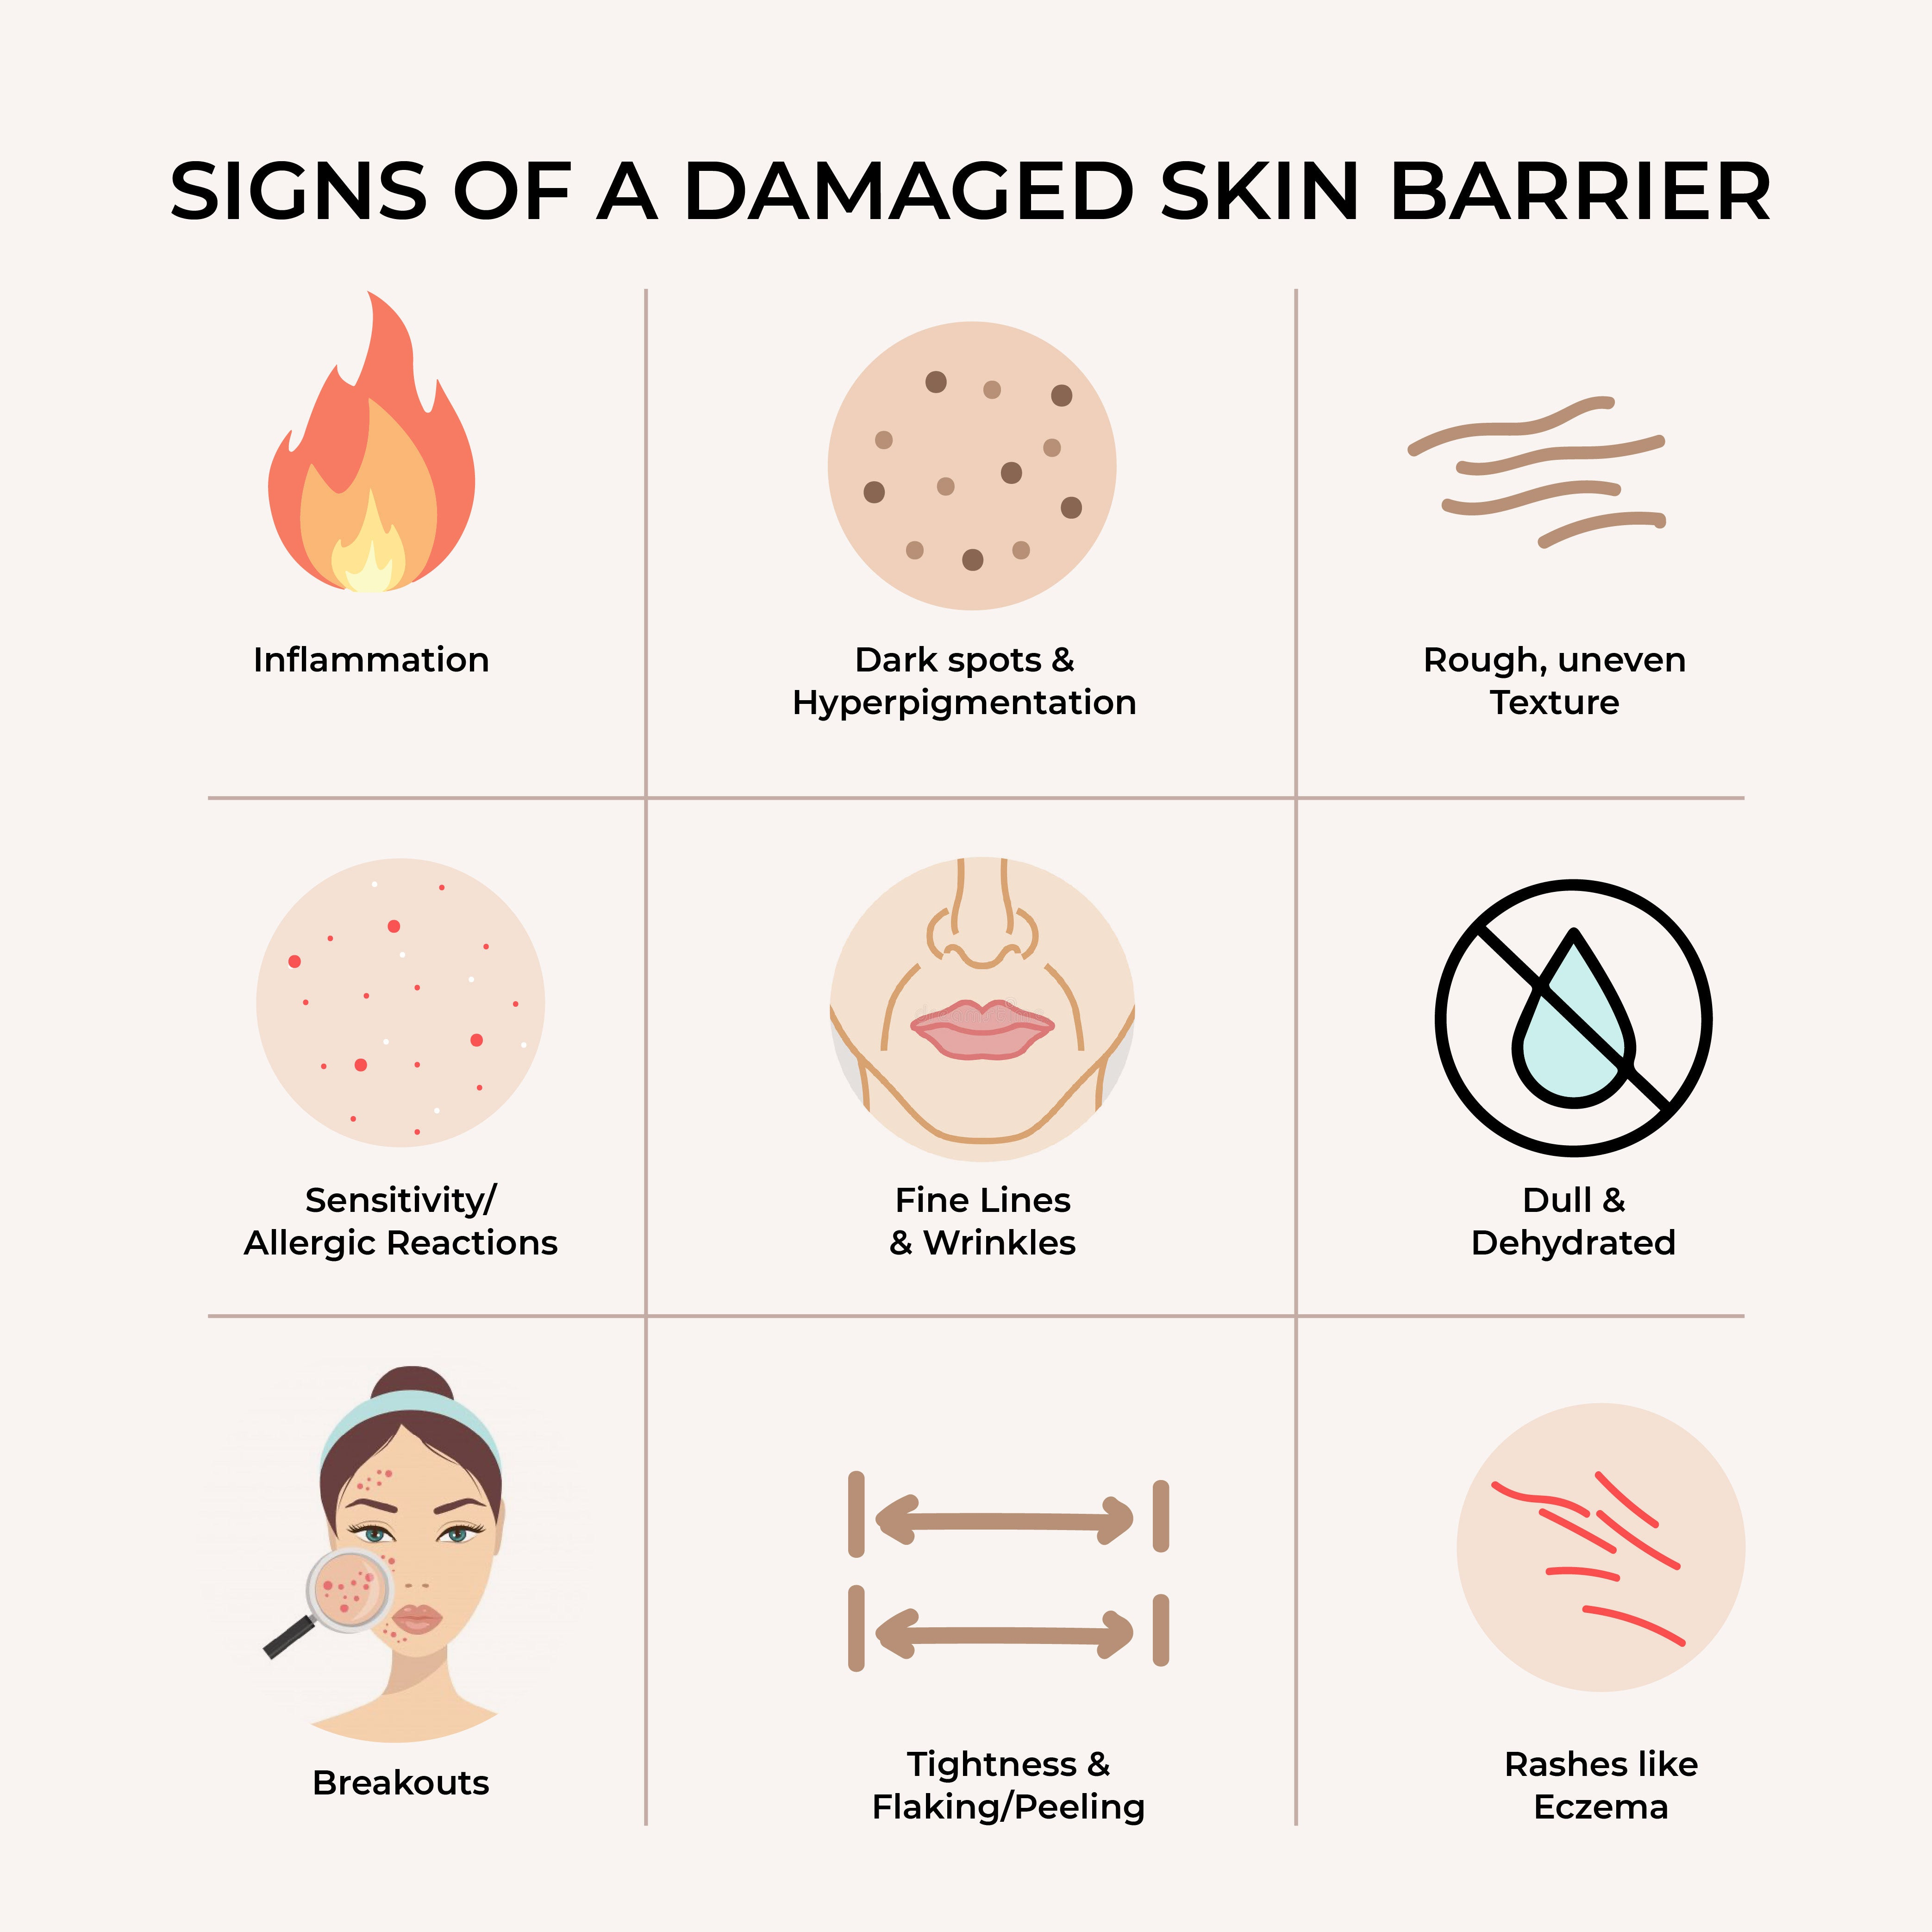 This is a image of signs of damaged skin barrier on www.sublimelife.in